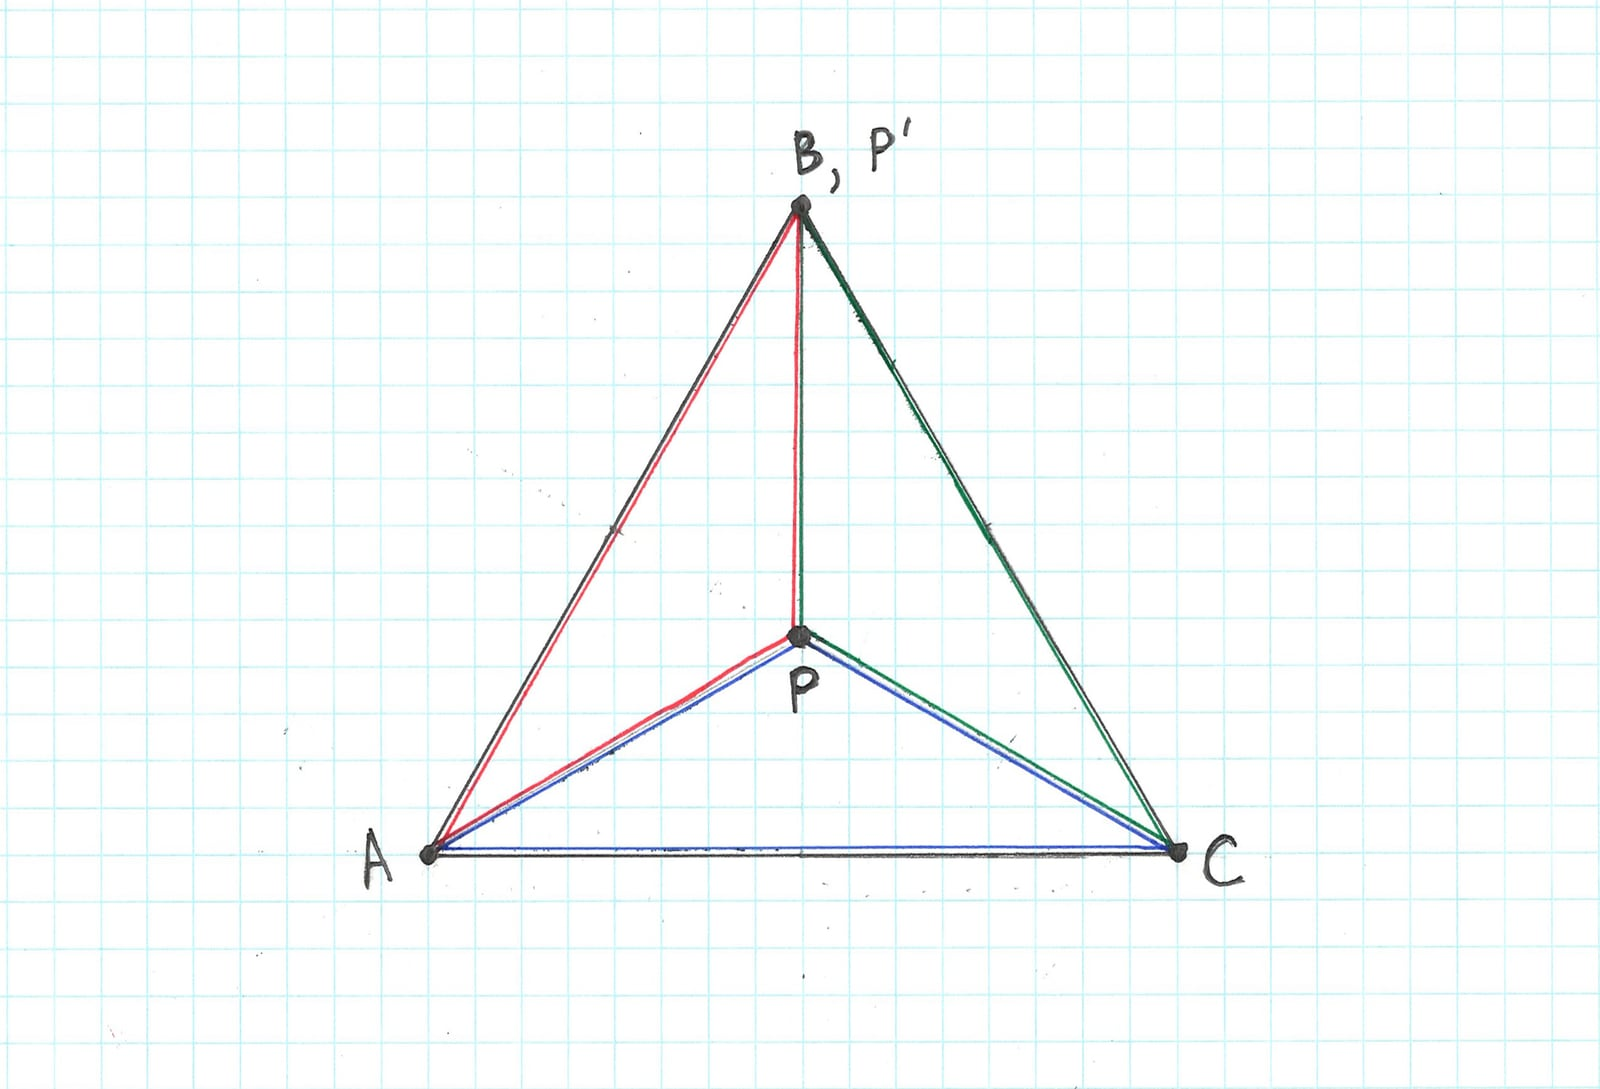 Barycentric coordinates on an equilateral triangle